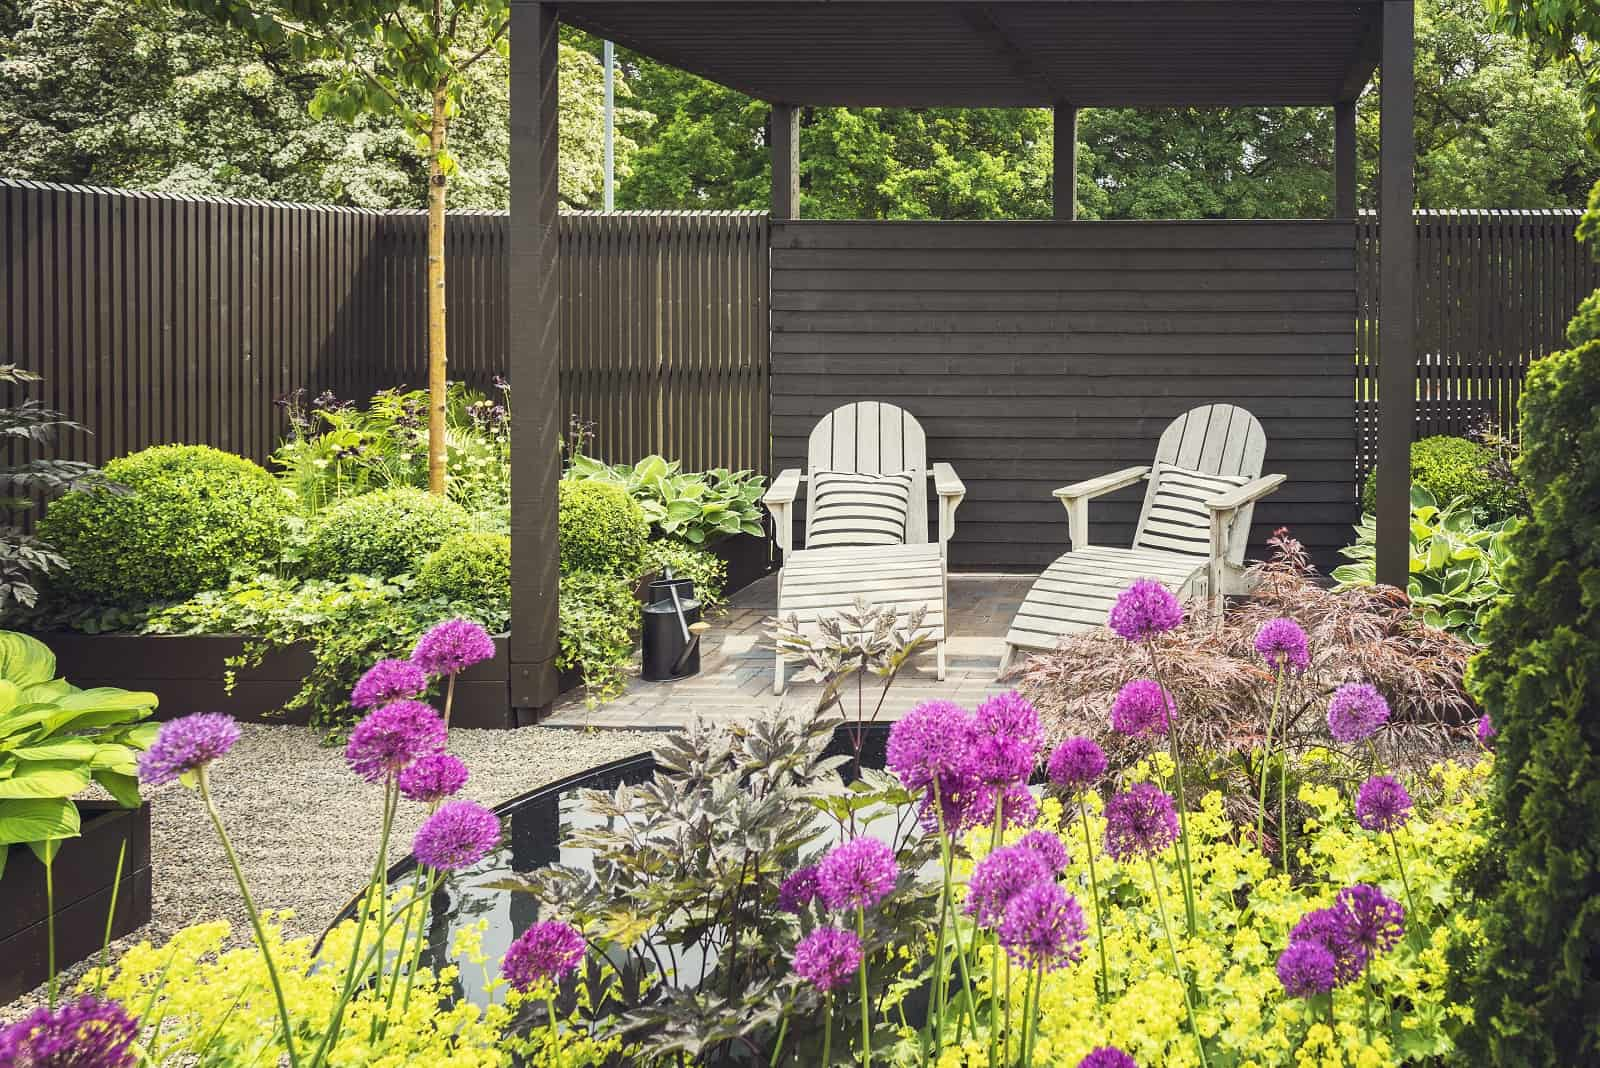 5 Benefits Of Reclining Garden Furniture. Backyard patio zone surrounded with blossoming plants